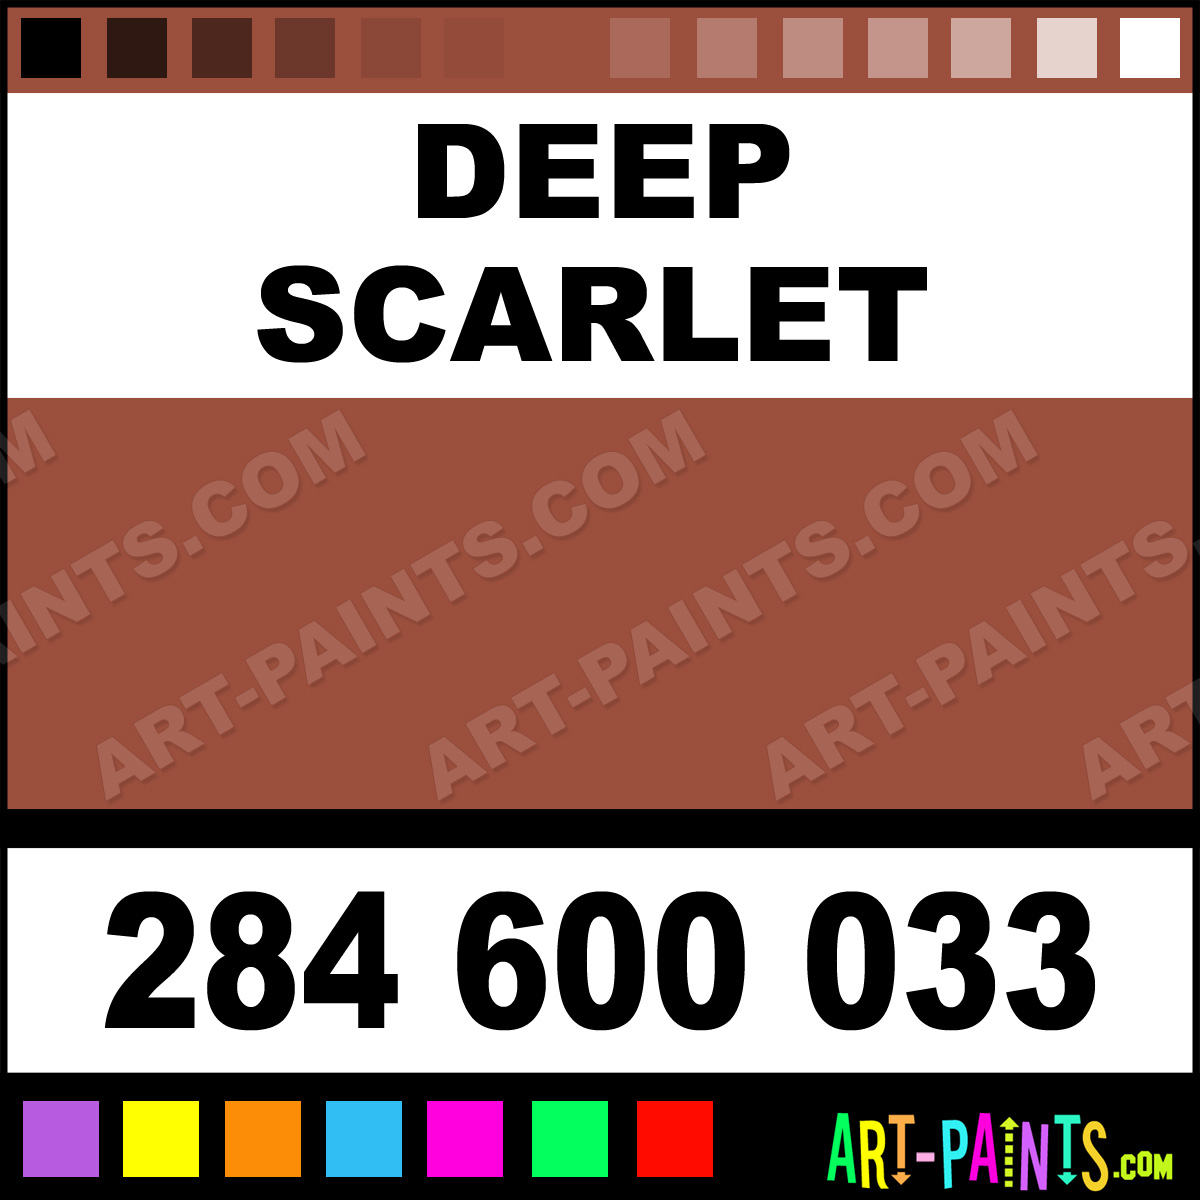 Deep Scarlet Extra Fine Watercolor Paints 284 600 033